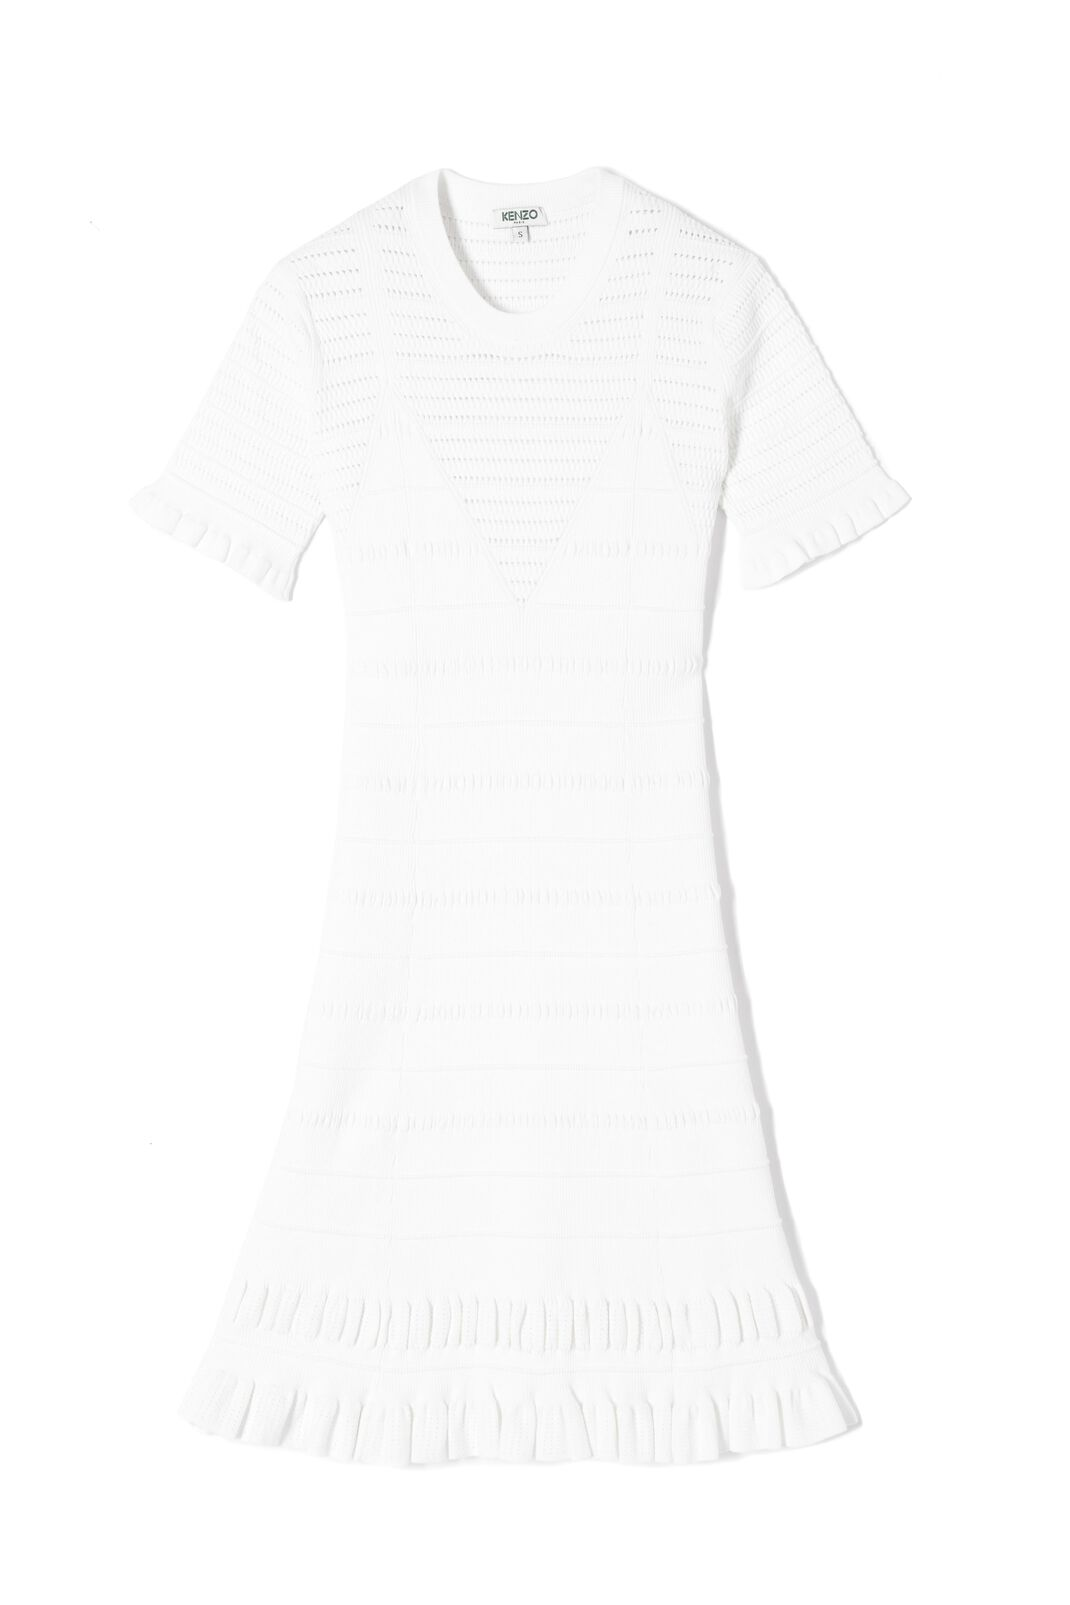 WHITE Short mesh openwork dress for women KENZO